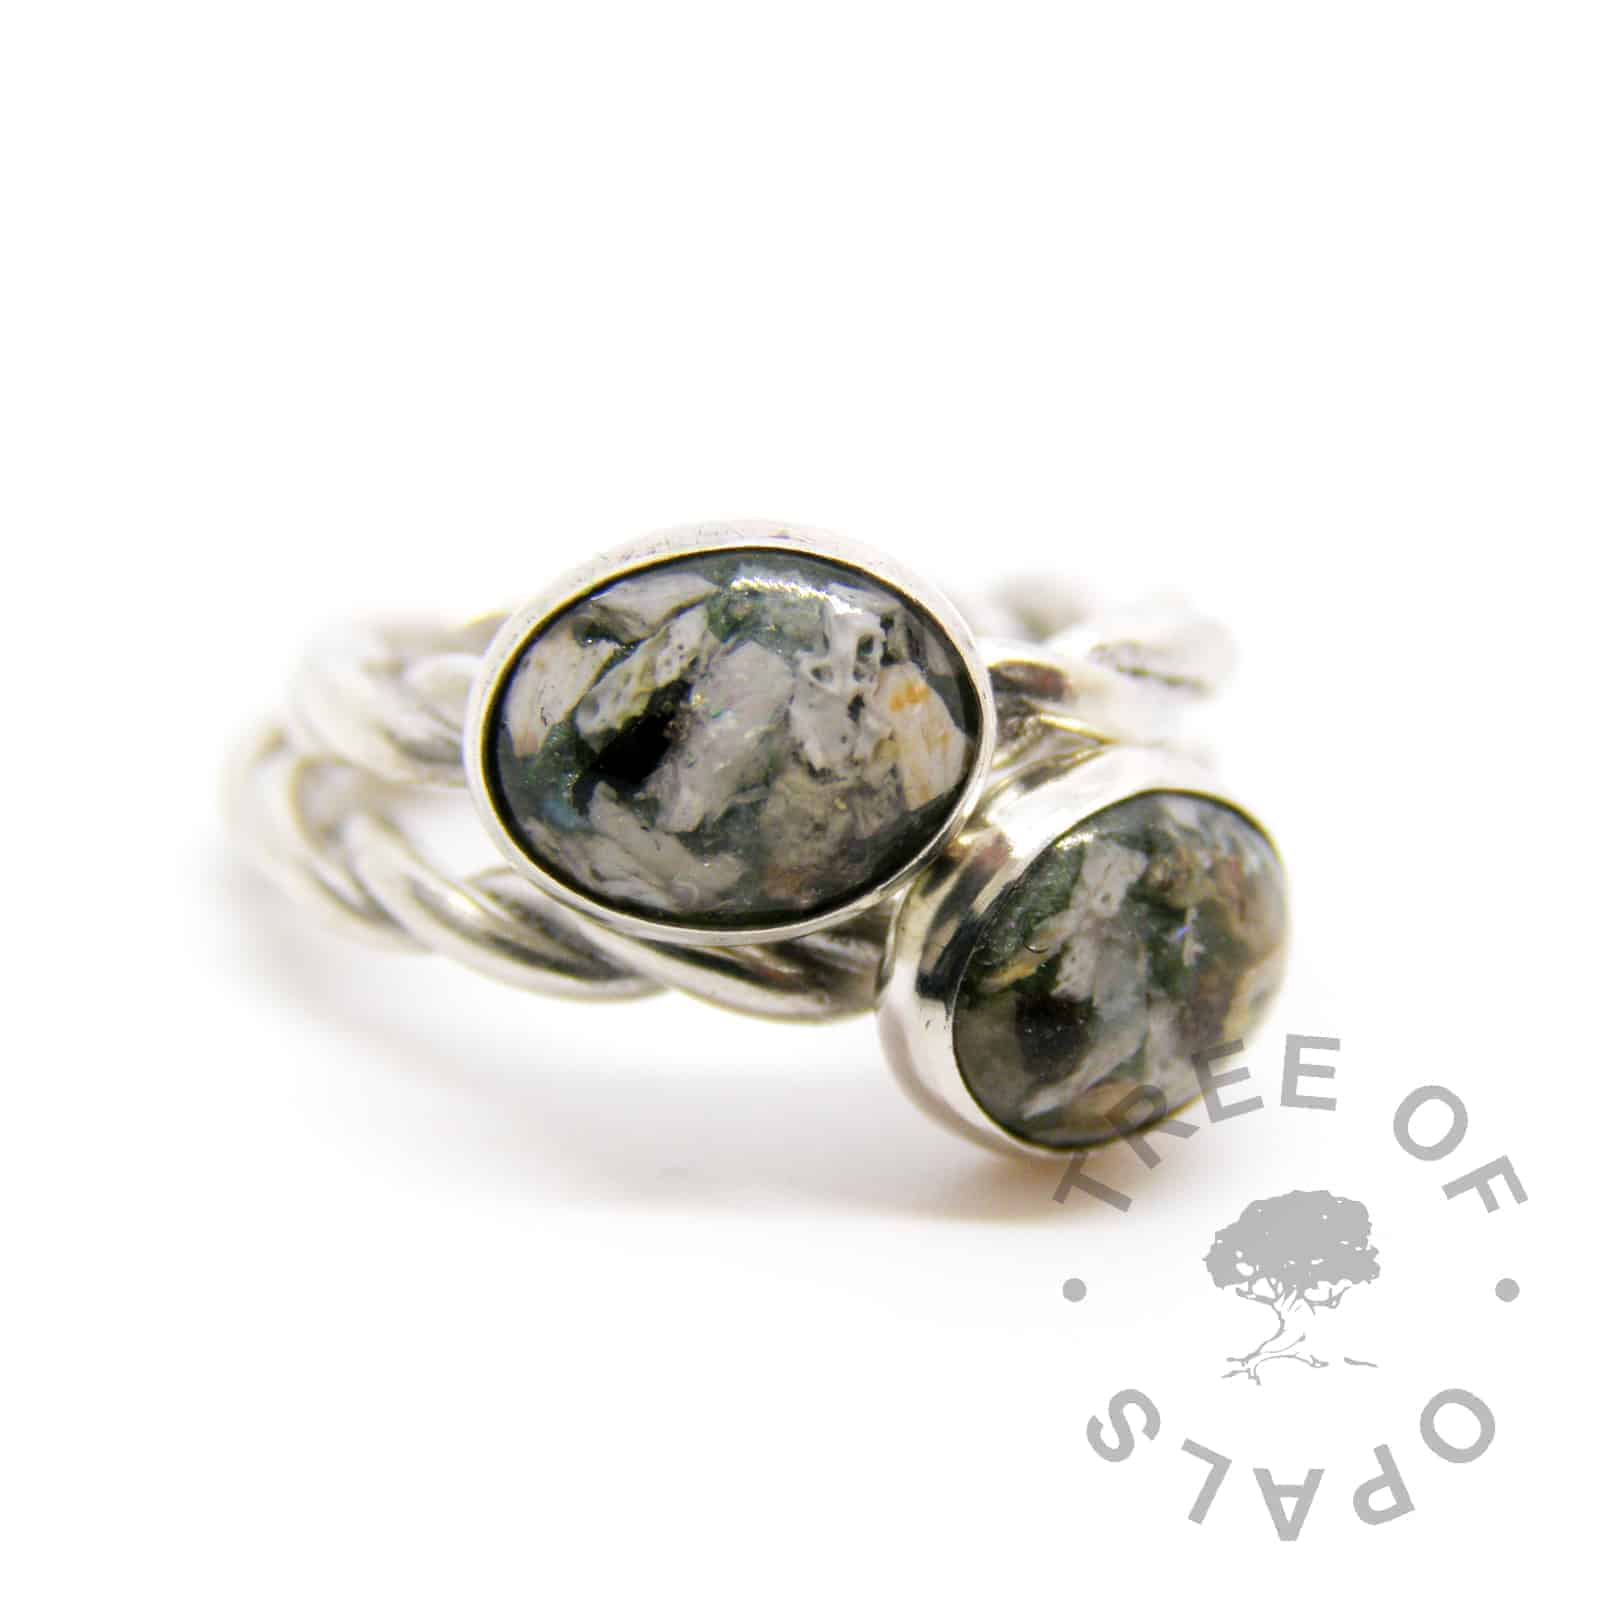 solid sterling silver cremation rings on twisted wire bands, ash rings with basilisk green sparkles and moonstone June birthstone